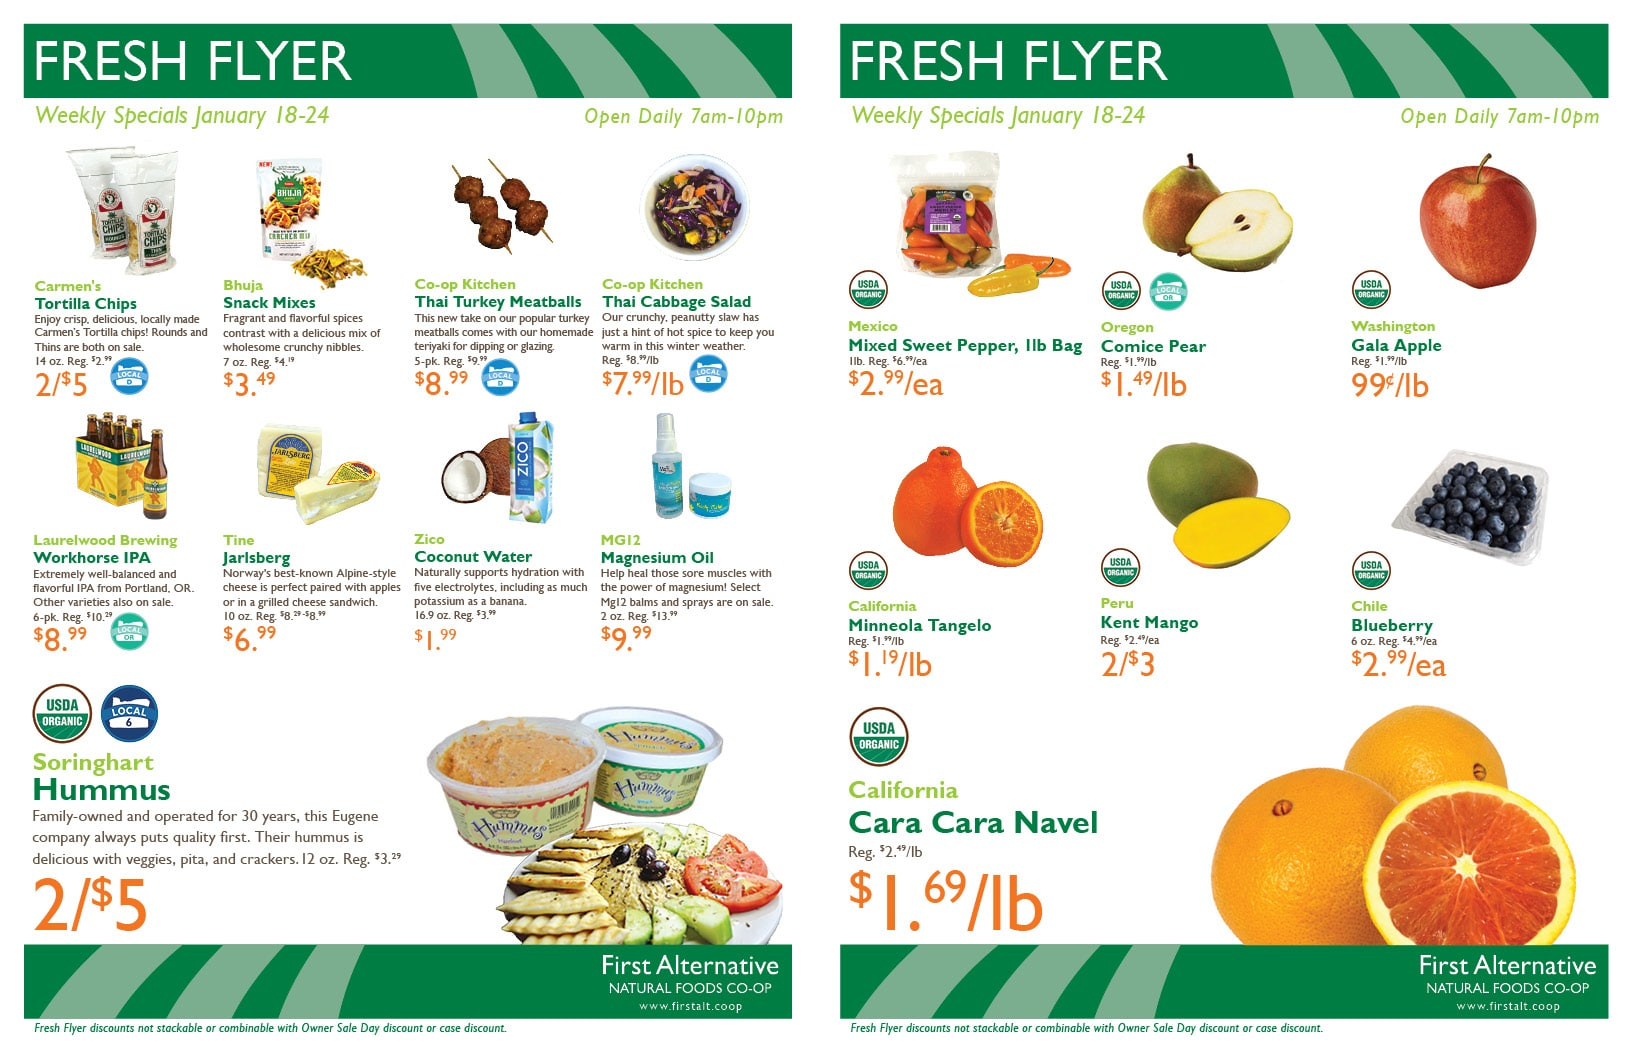 First Alternative Co-op Fresh Flyer Jan. 18-24